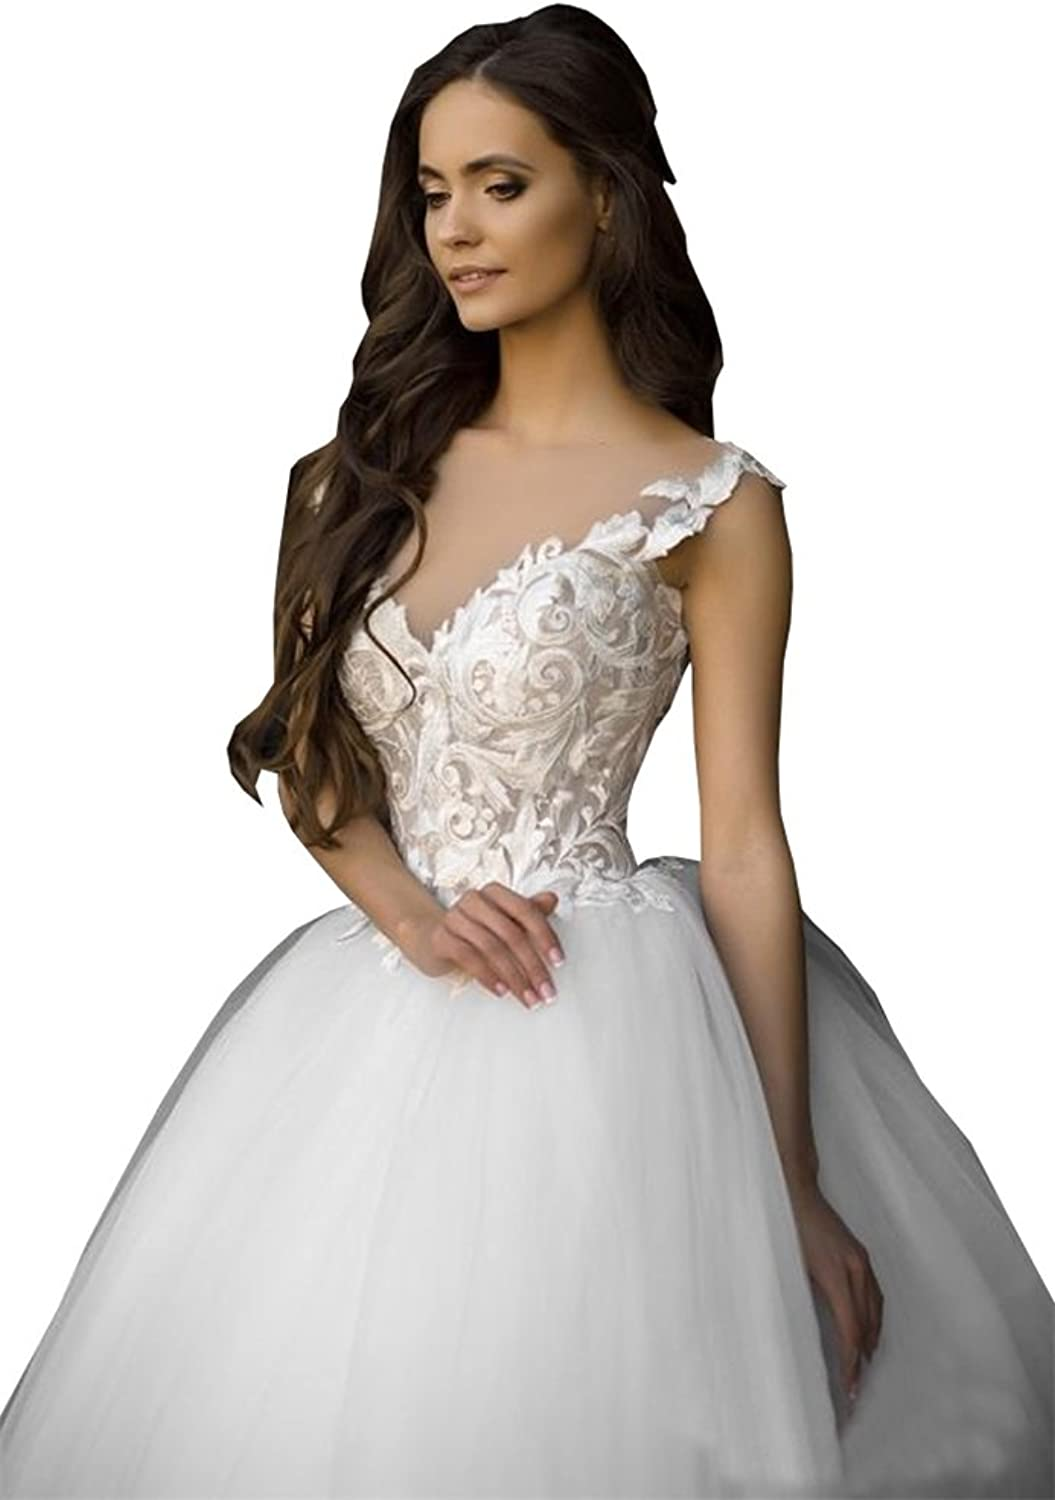 Ellystar Women's Ball Gown Tulle Backless V Neck Ssleeveless Wedding Dresses